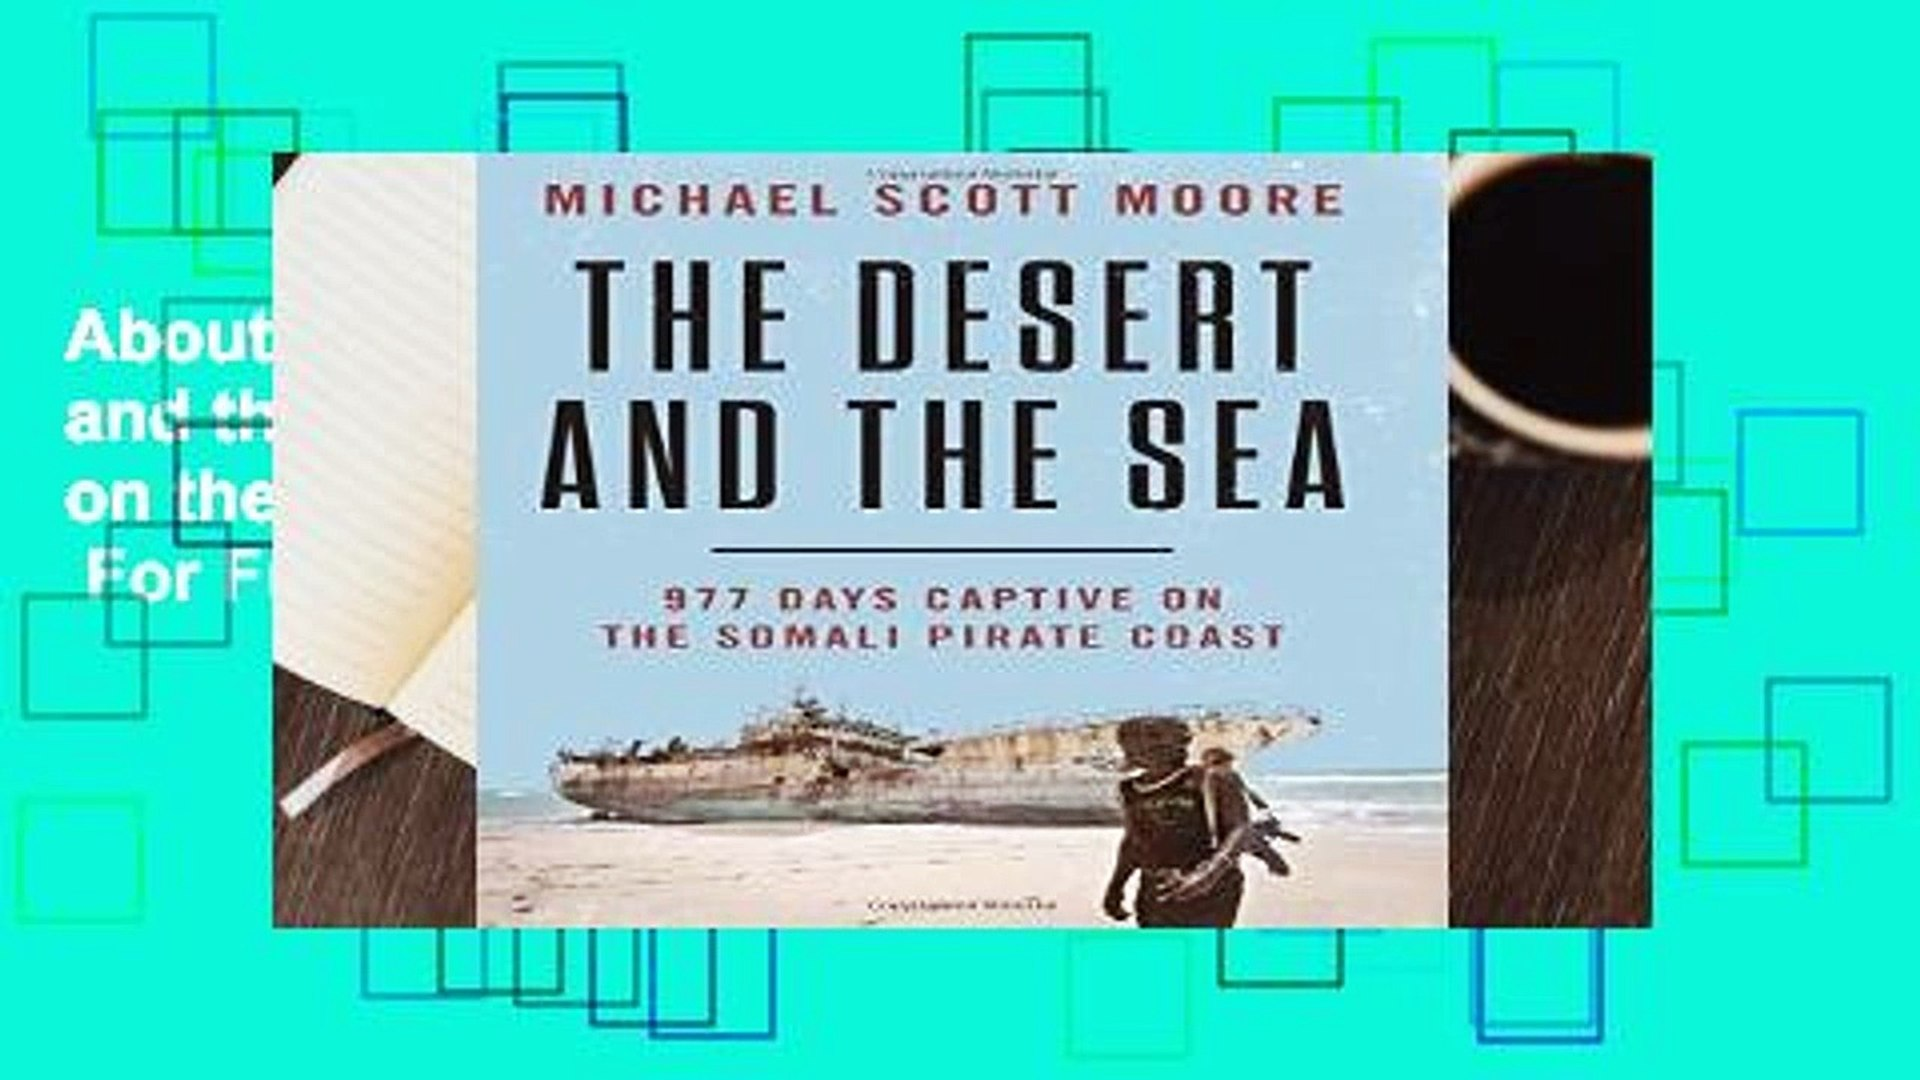 About For Books  The Desert and the Sea: 977 Days Captive on the Somali Pirate Coast  For Full